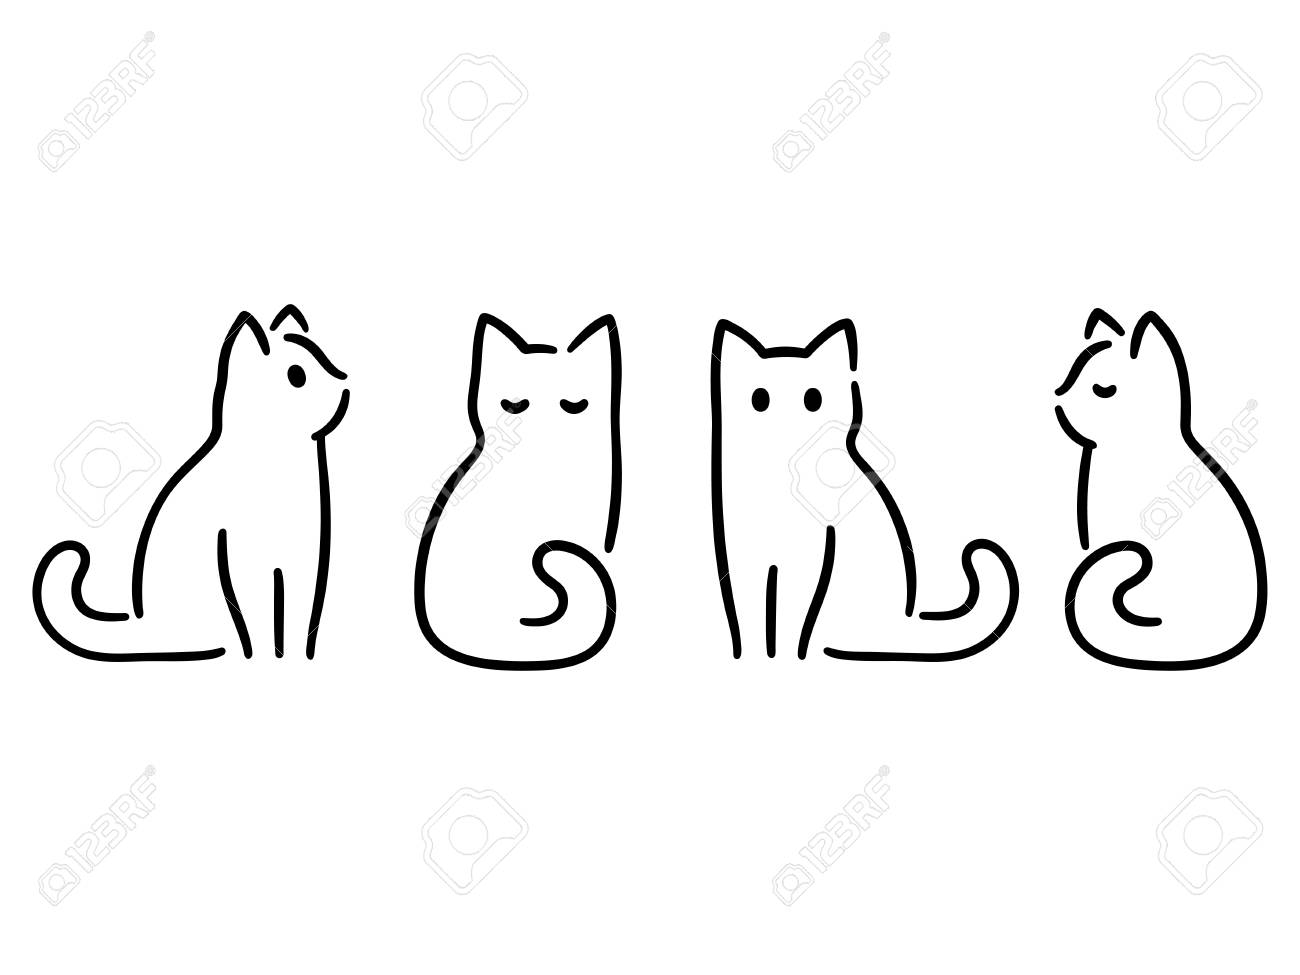 Minimalist cats drawing set. Cat doodles in abstract hand drawn style, black and white line art vector illustration. - 95218342